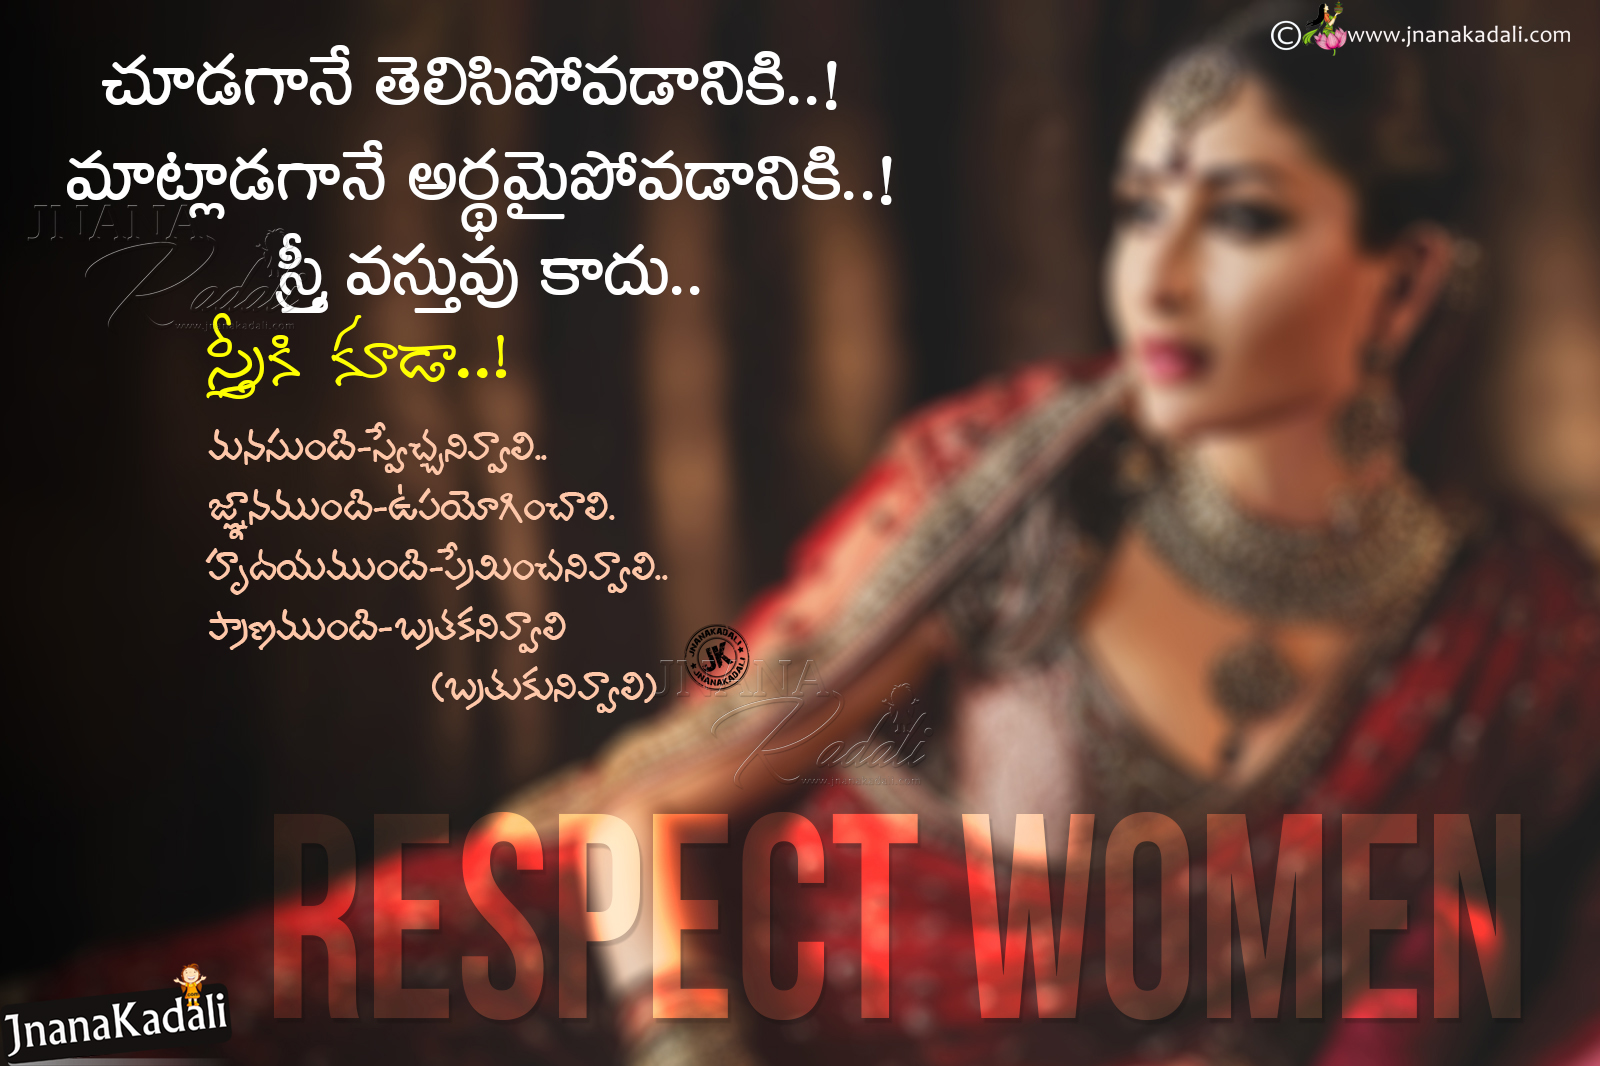 Greatness Of Woman In Our Tradition And Culture Respect Woman Don T Abuse Them Motivational Sayings In Telugu Brainysms